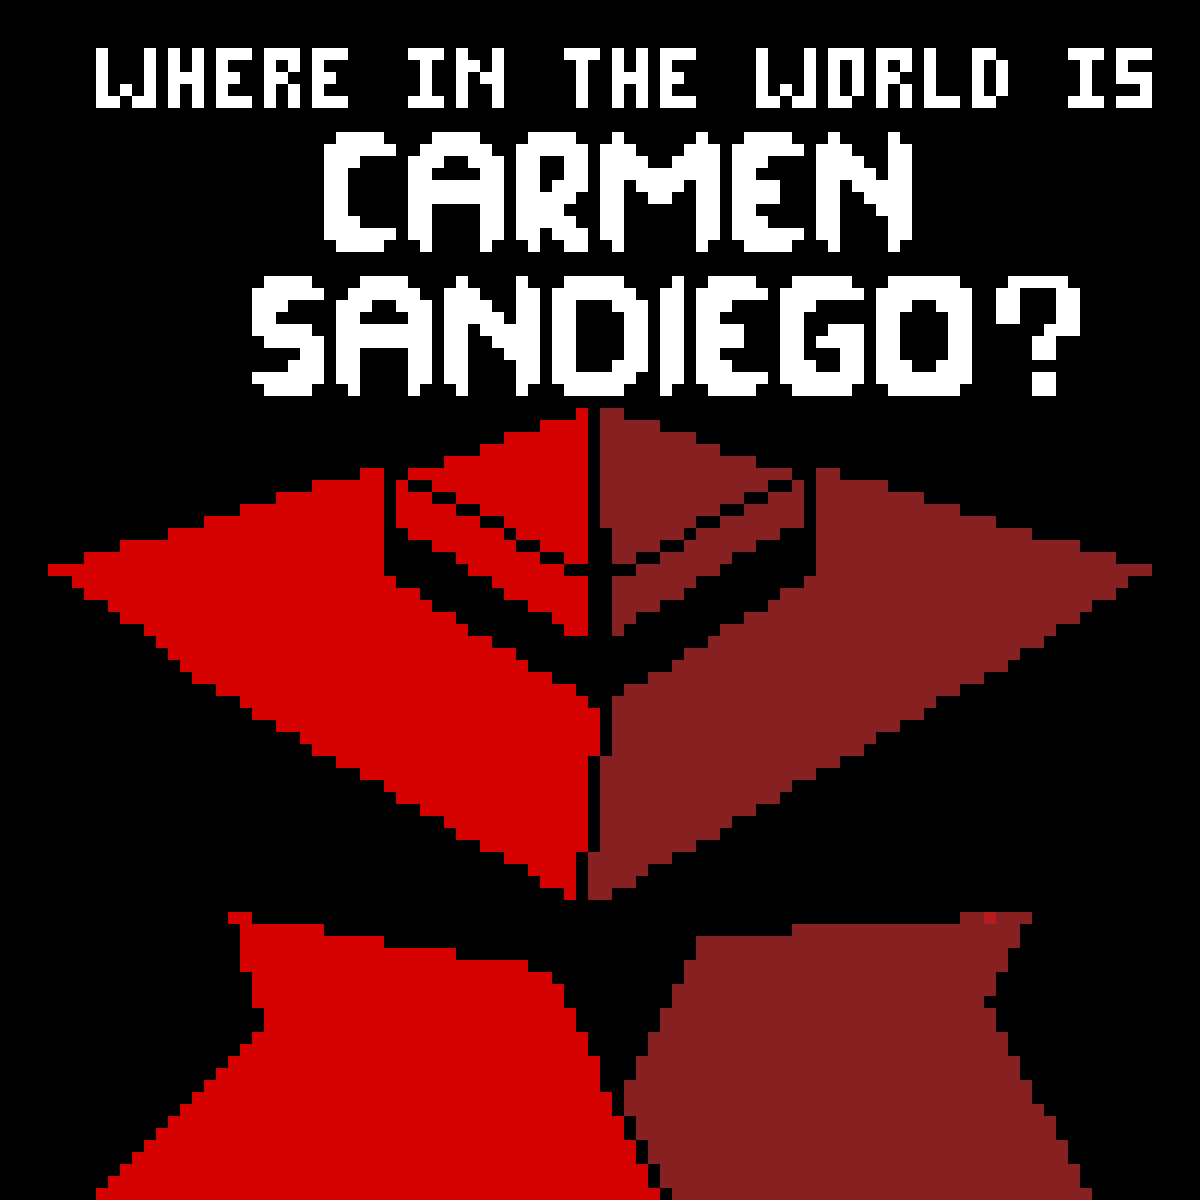 Carmen Sandiego by DragonHunter11